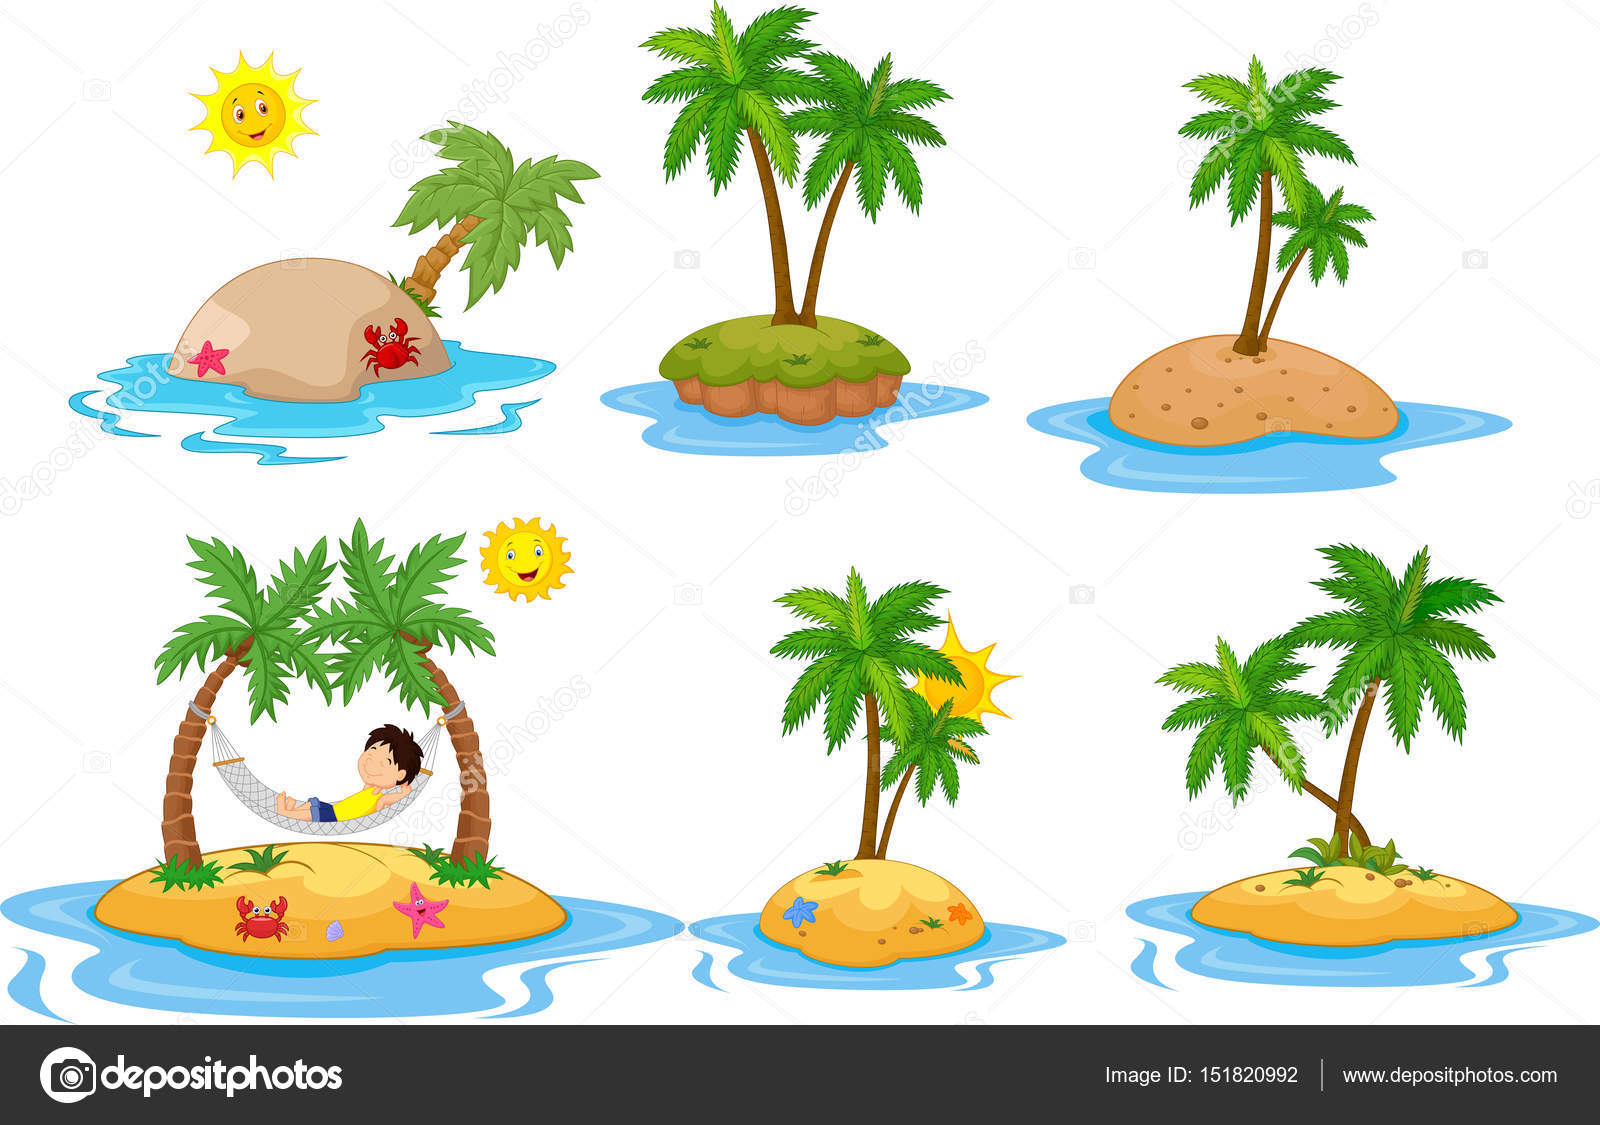 Tropical Island Cartoon: Cartoon Tropical Island Collection Set